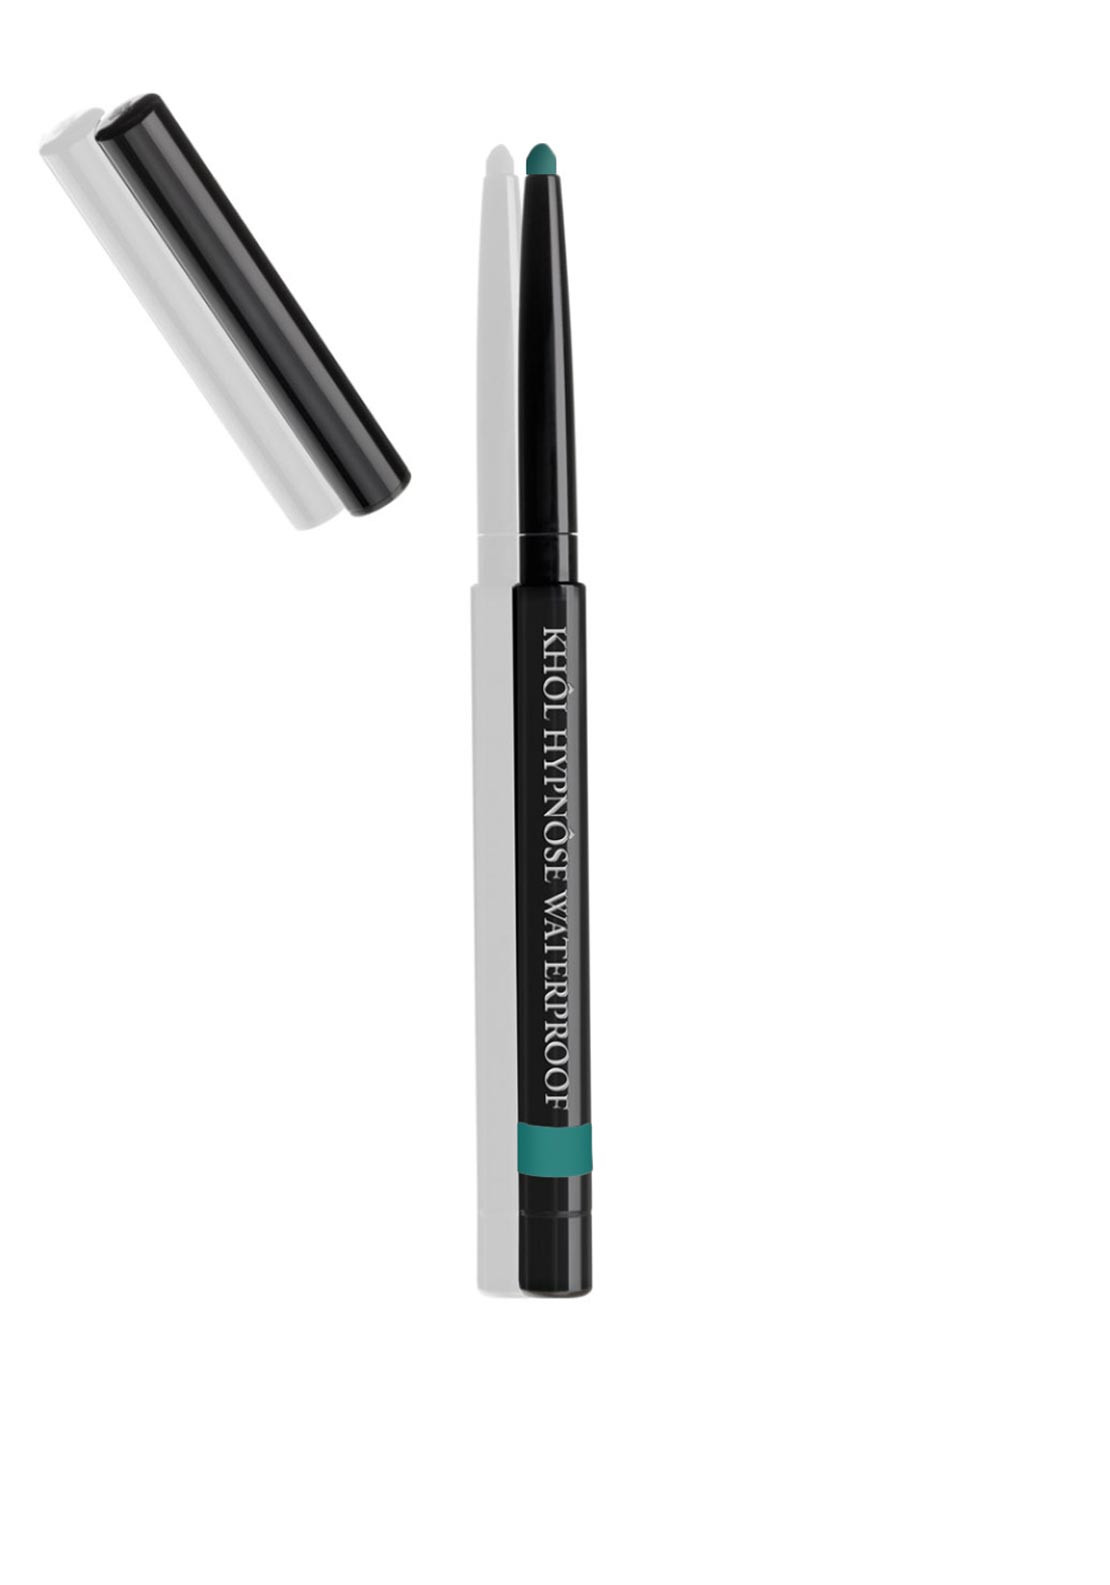 Lancôme Khôl Hypnôse Waterproof Twist Up Eye Pencil, Vert Tuileries 08